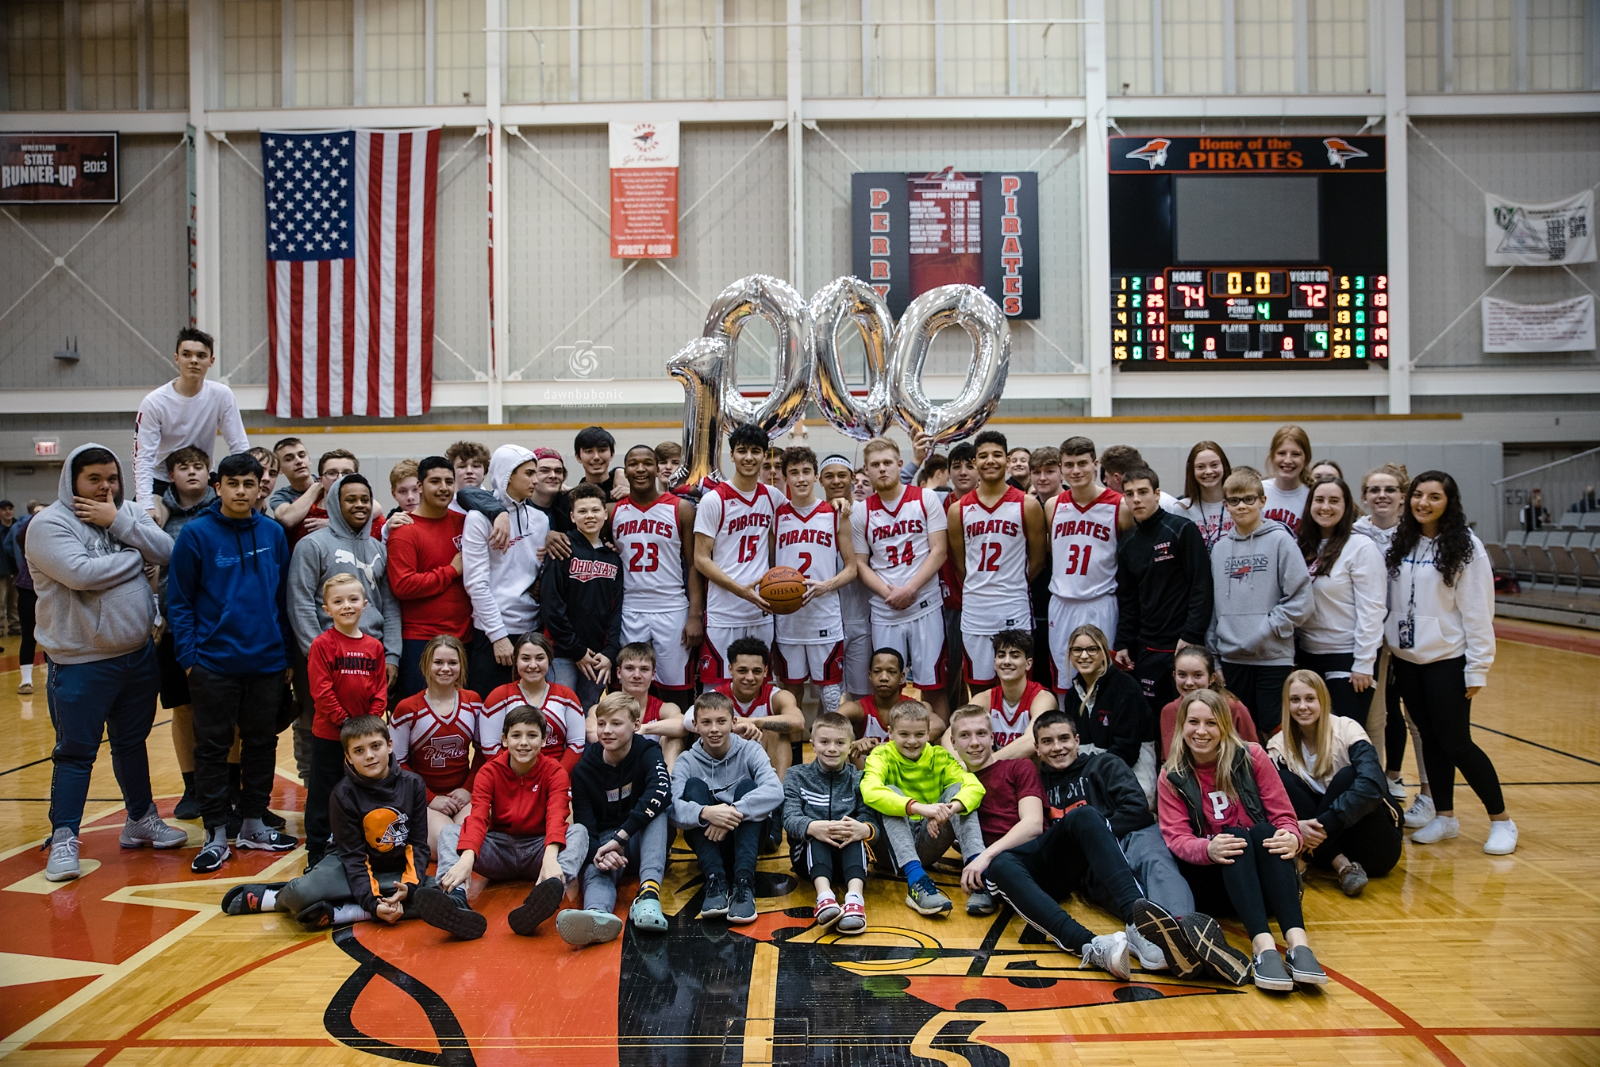 Perry Defeats Chardon & Schiano Scores 1,000th Point